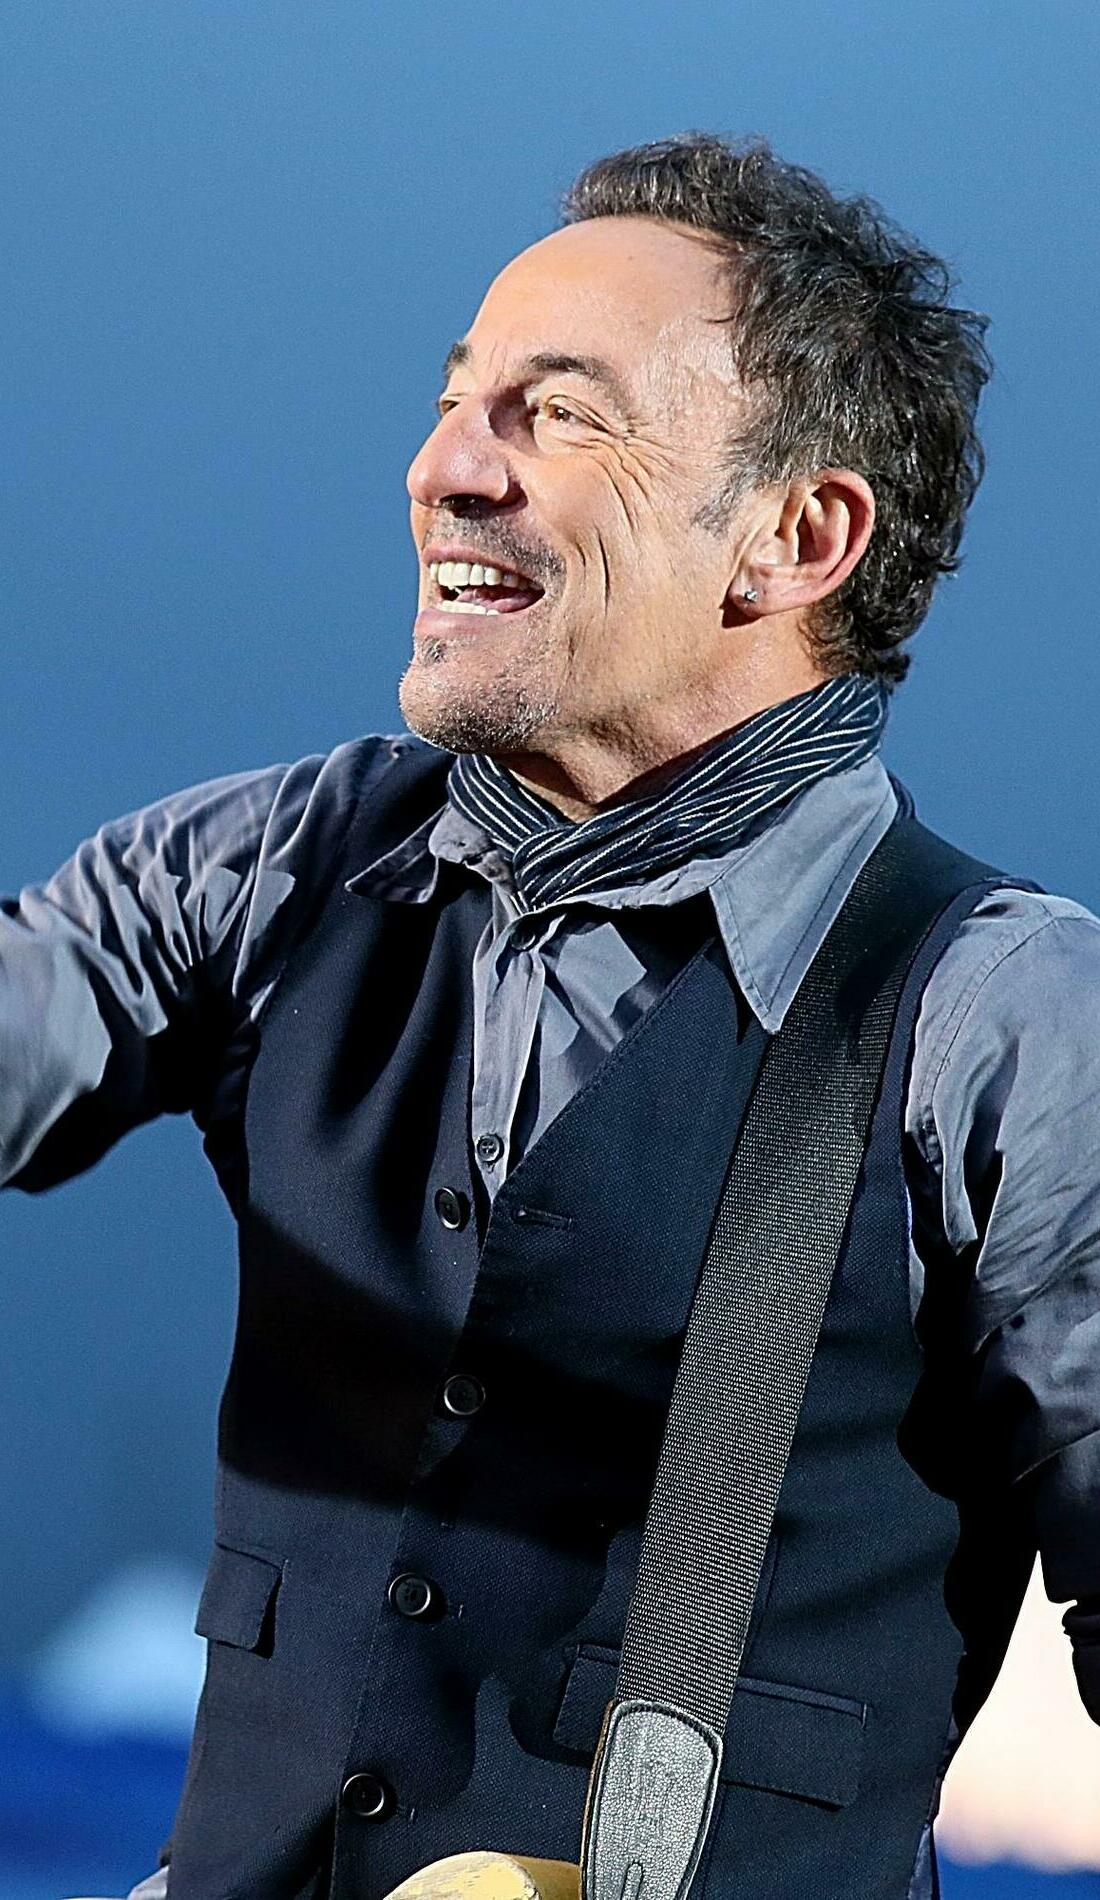 A Bruce Springsteen live event